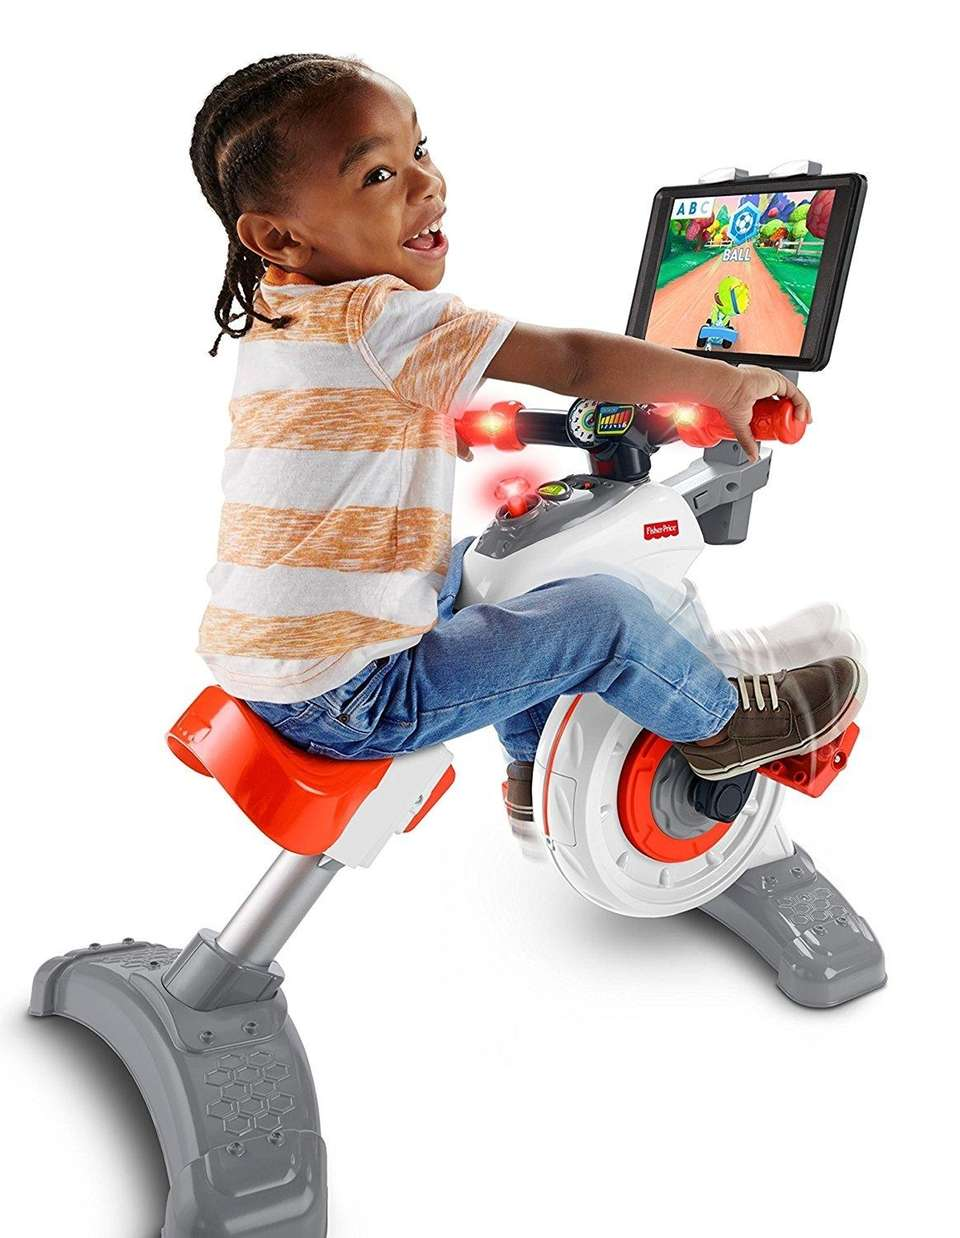 The Fisher-Price Think & Learn Smart Cycle Toy,